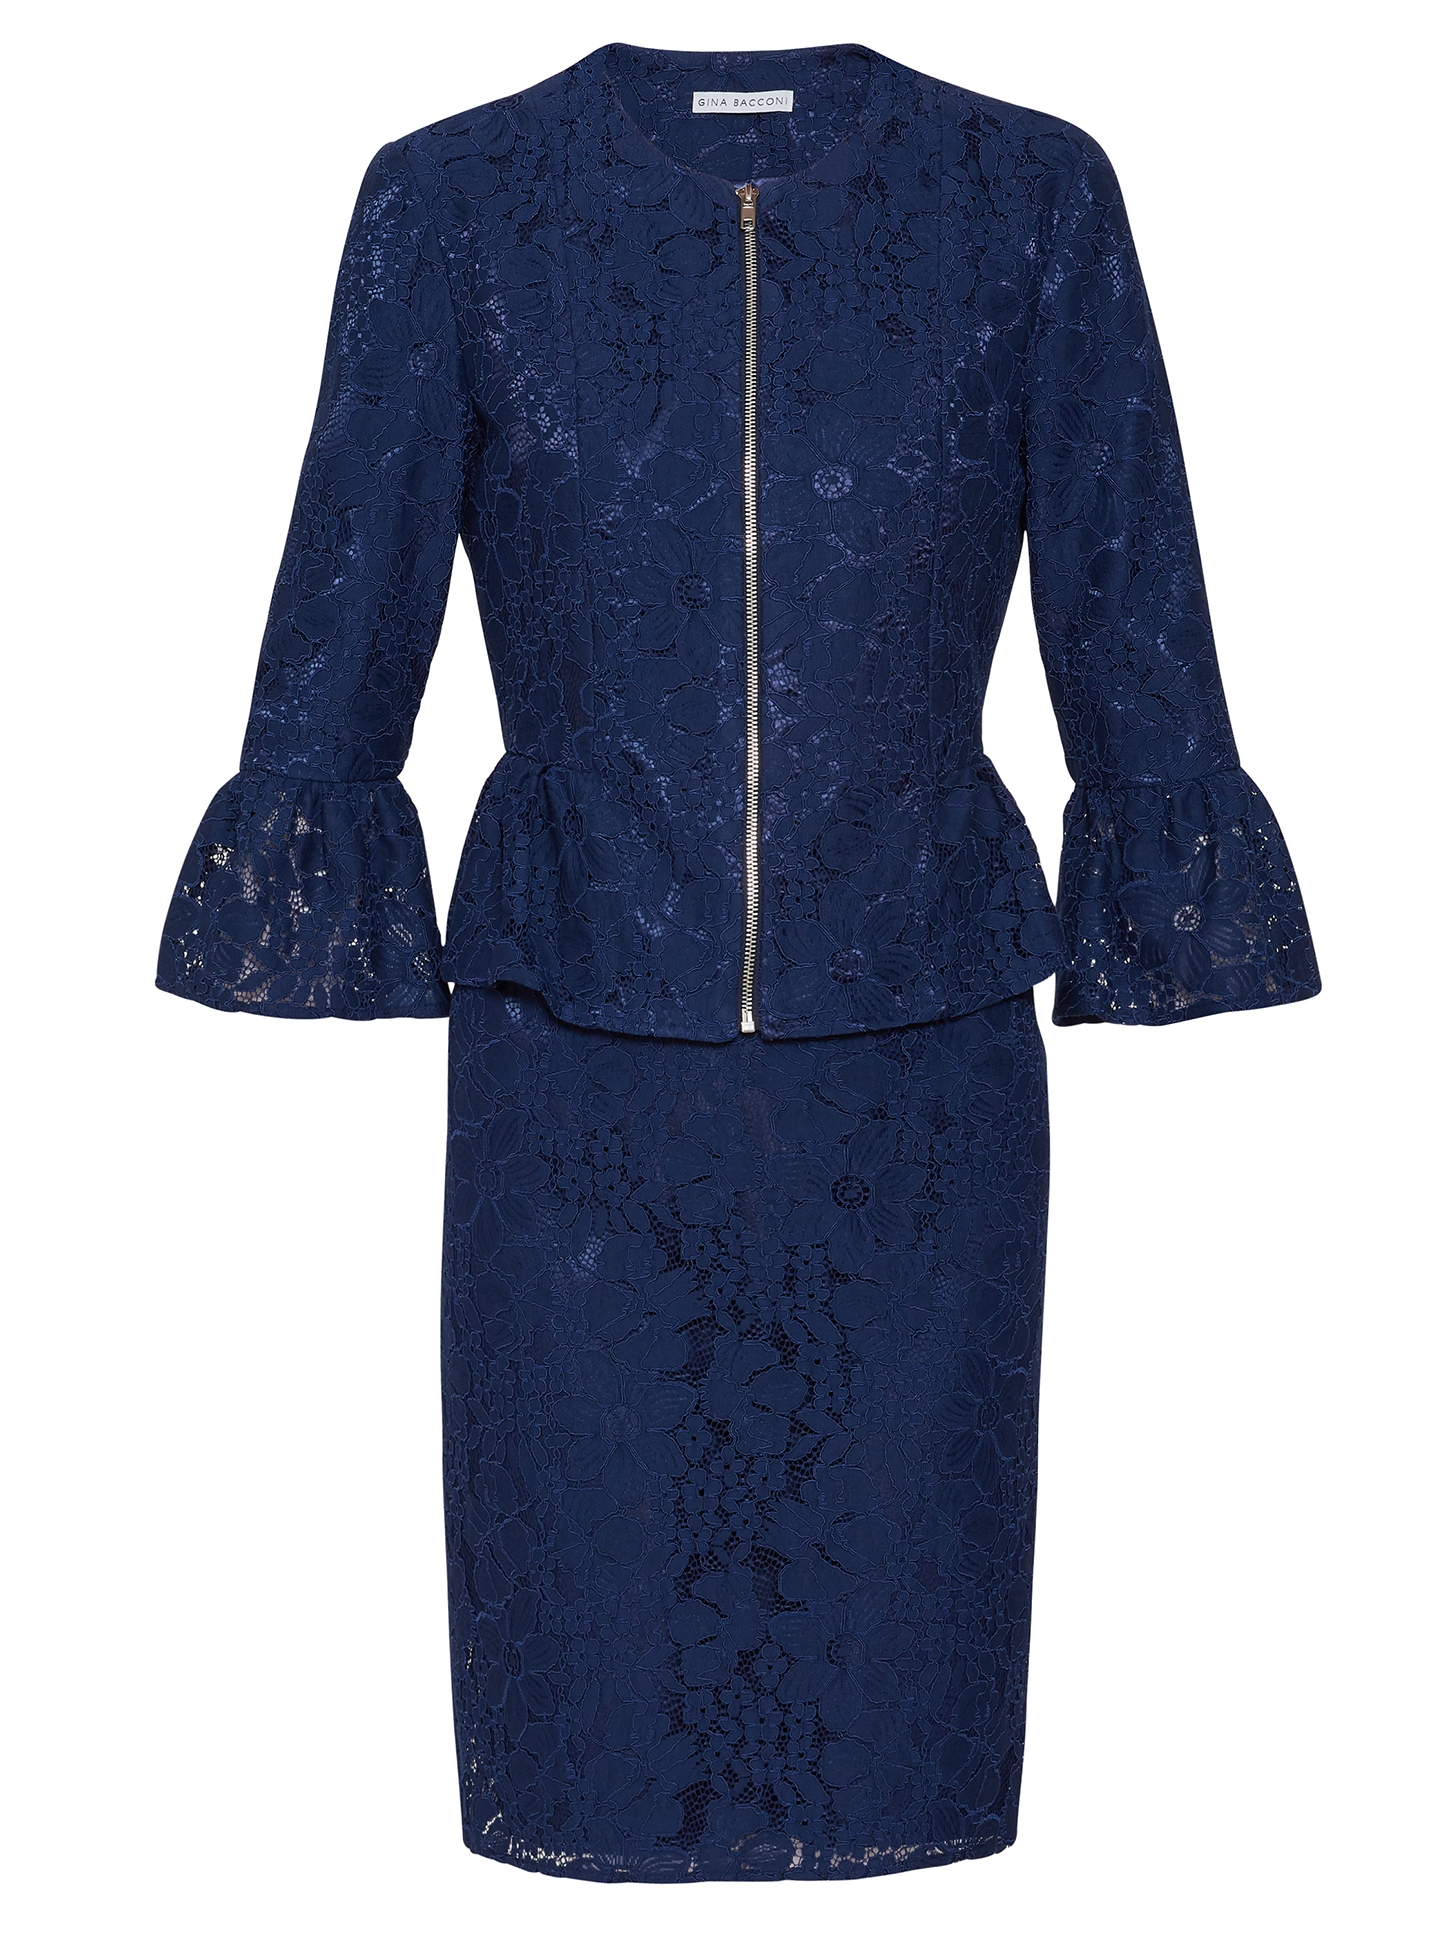 Mariana Lace Dress And Jacket